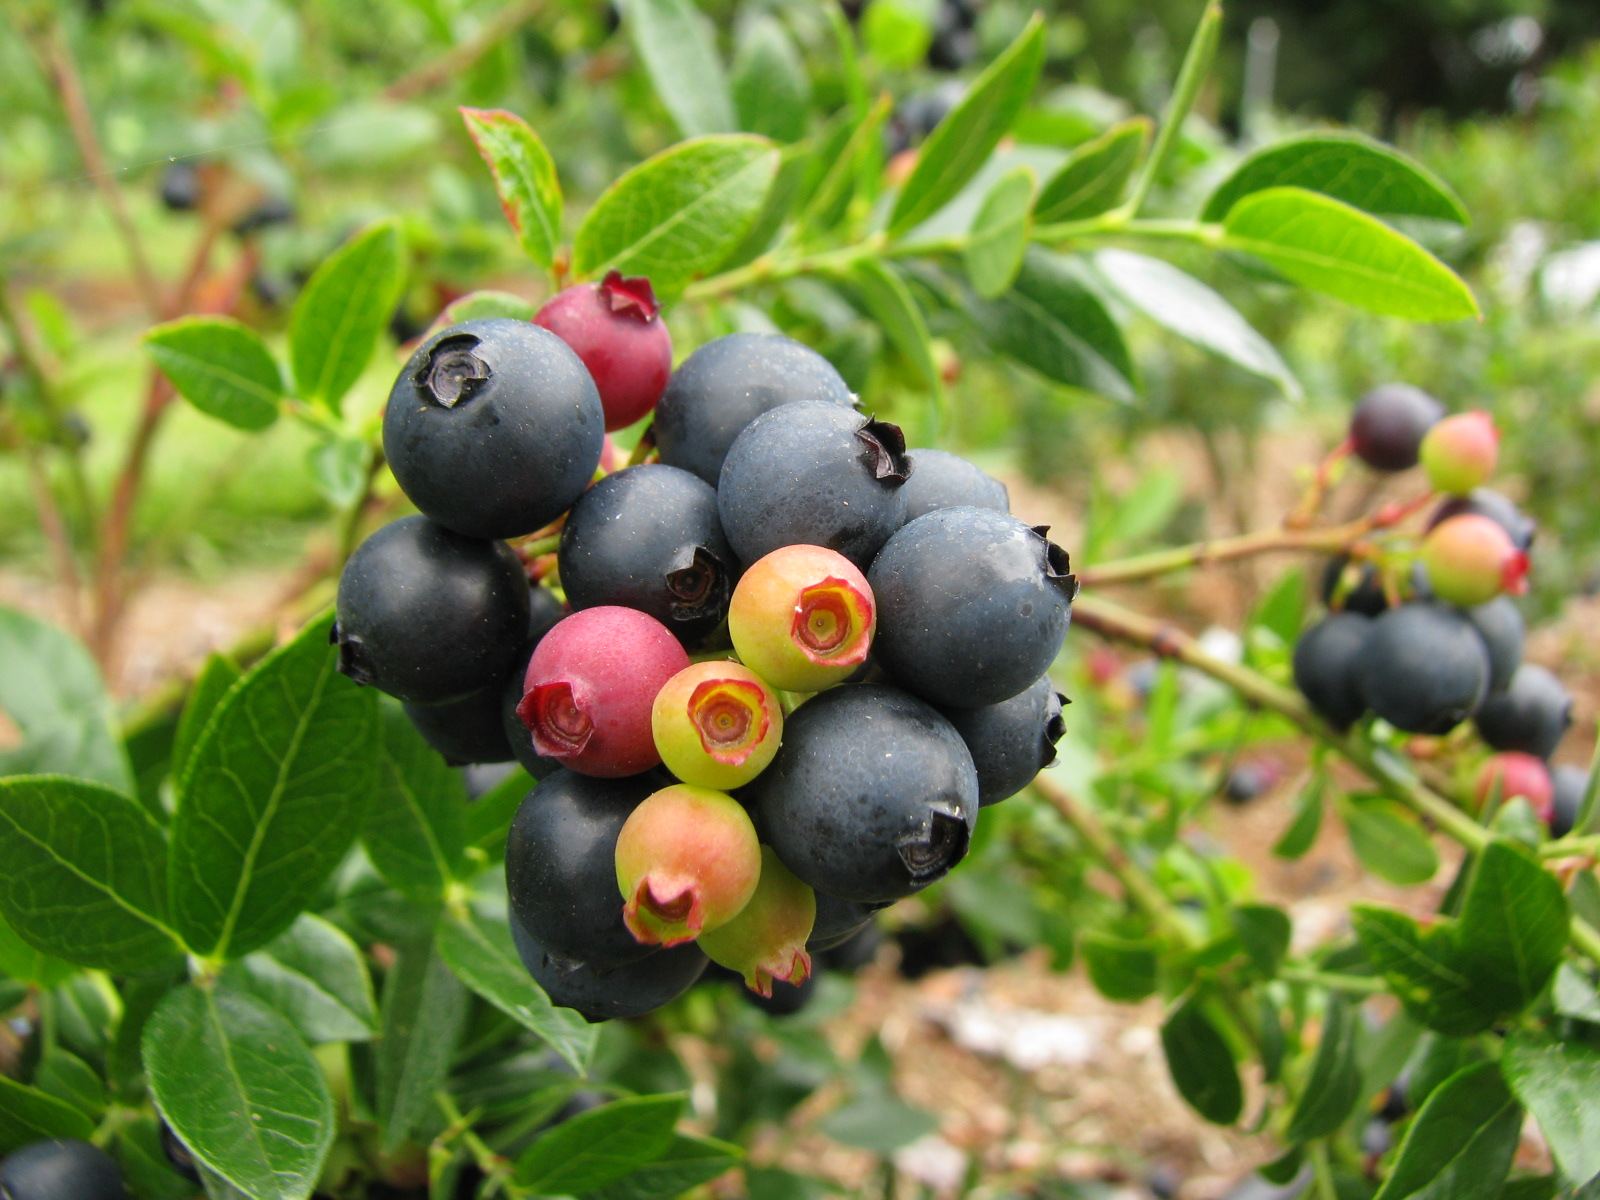 Espoma soil acidifier, Holly-tone, growing blueberries